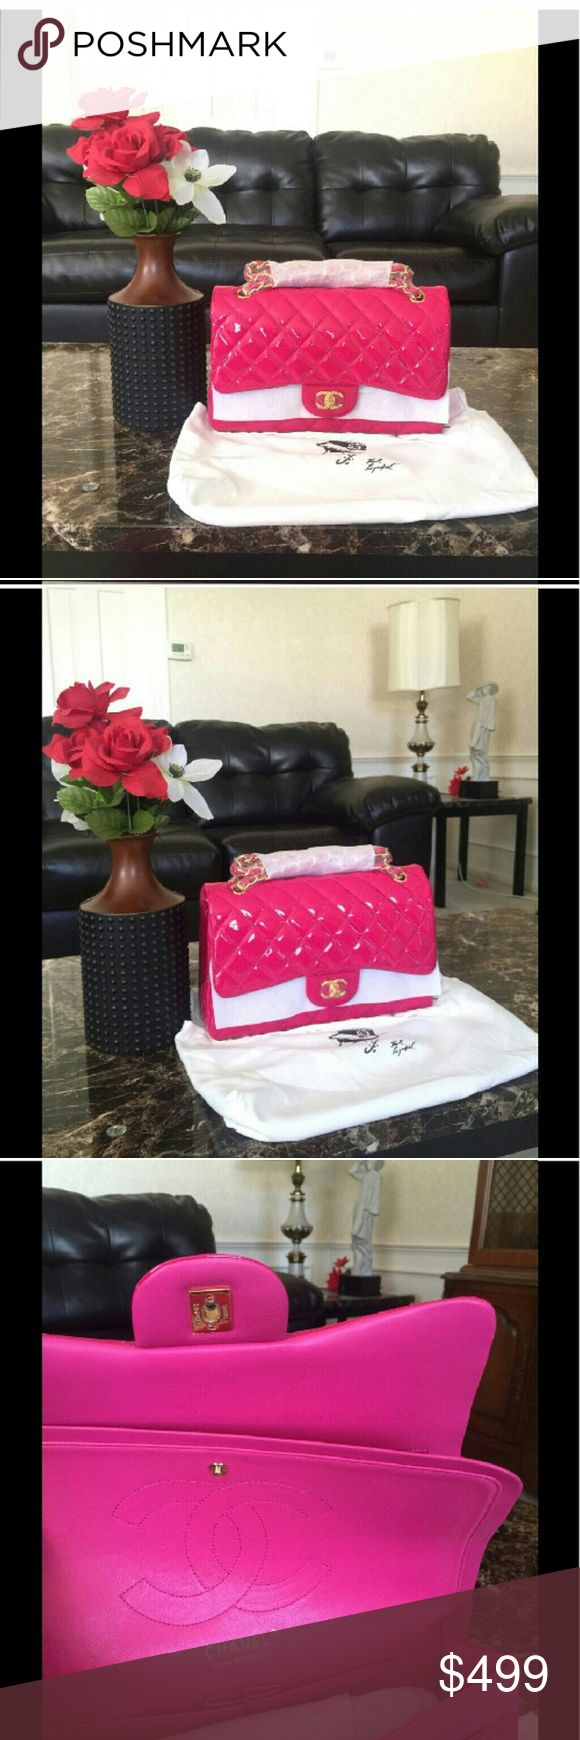 Chanel jumbo bag Dark pink chanel jumbo flap bag. Price reflects auth. This price is fixed on here and cheaper on p. A. Y. P. A. L. No trades! Bags Shoulder Bags